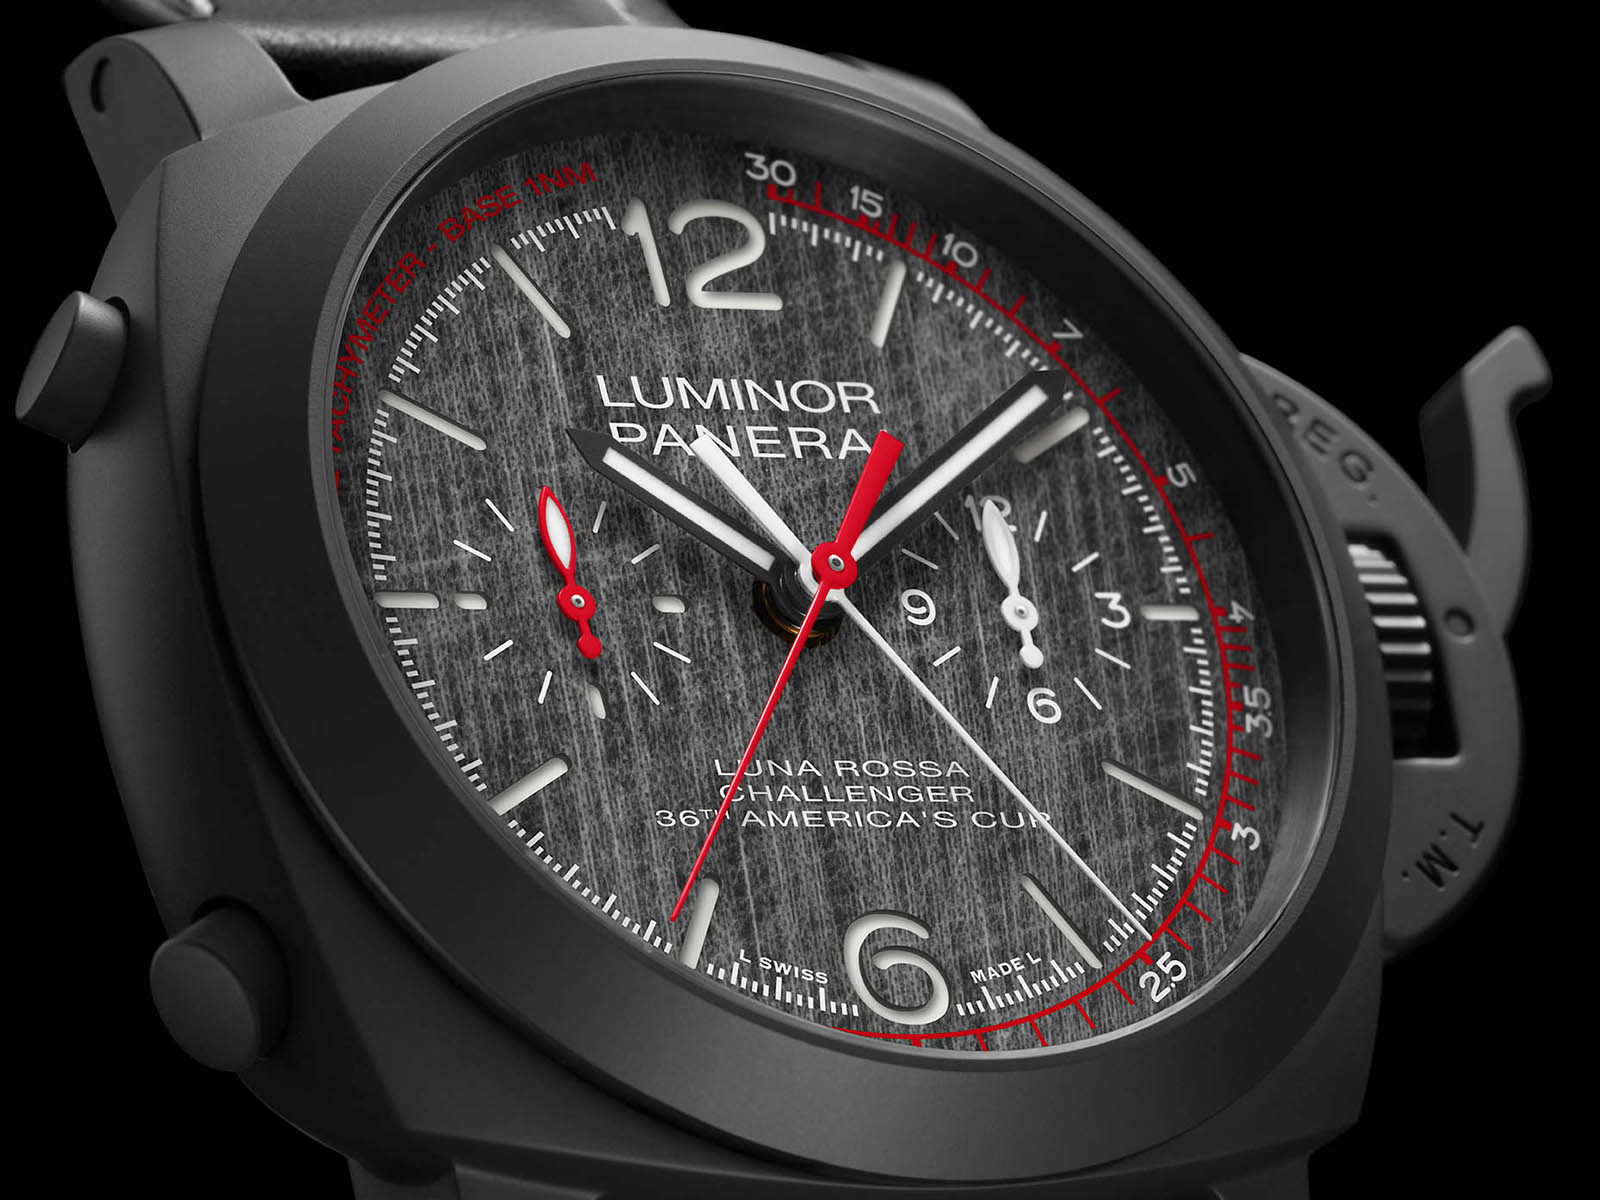 panerai-luminor-luna-rossa-11.jpg